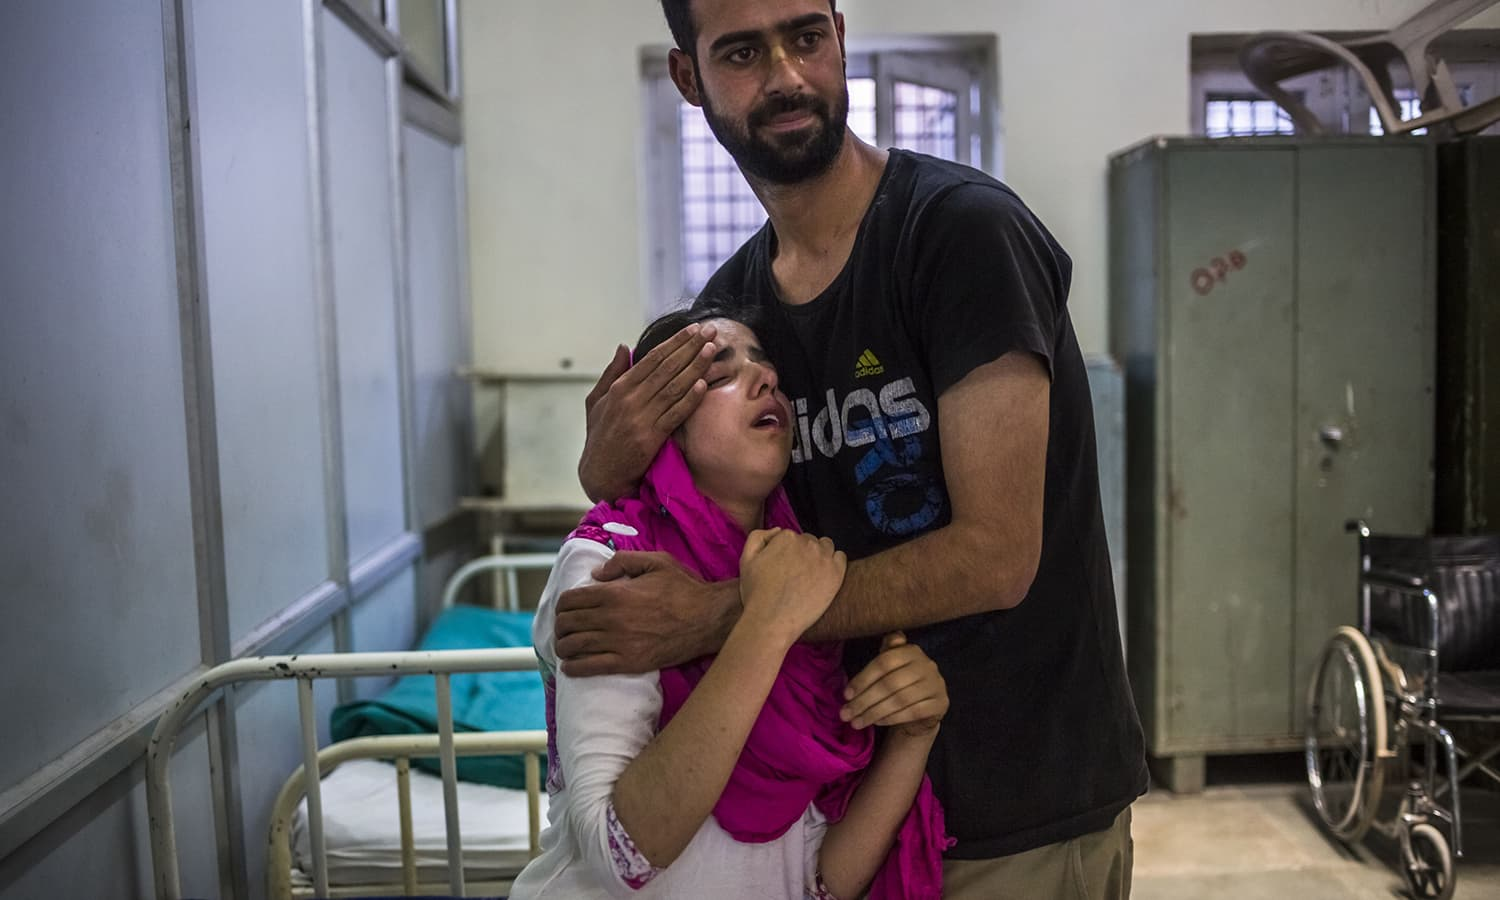 A Kashmiri youth accompanying a family member holds Khobu Zainab, 15, and who is unrelated, as she reacts as medical staff try to sedate her during a panic attack in the casualty ward of the Psychiatric Diseases Hospital in Srinagar. ─AFP